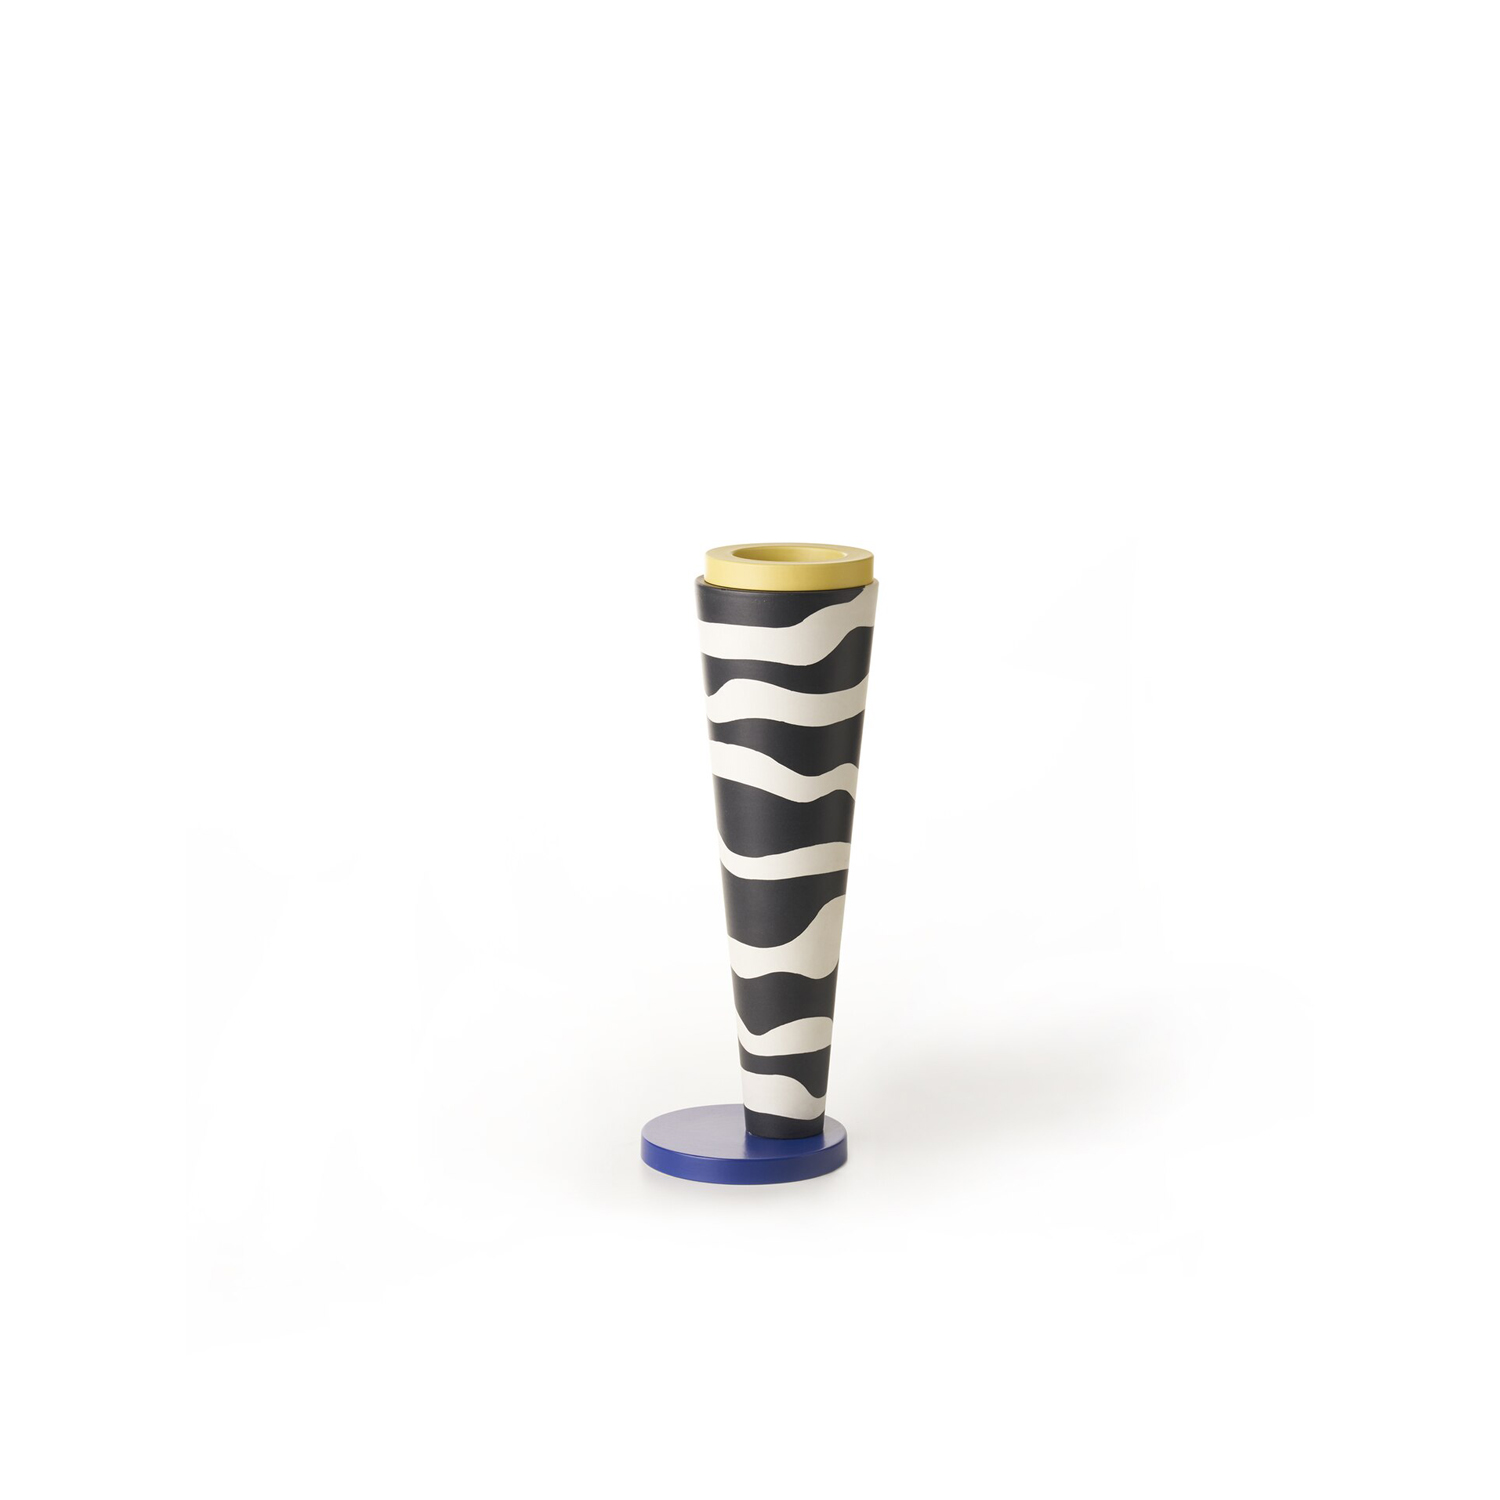 GJS Vase B - This striking vase hand-turned in white clay features a matt black pattern on white glaze. The base and mouth of the piece are covered in blue and yellow glaze.